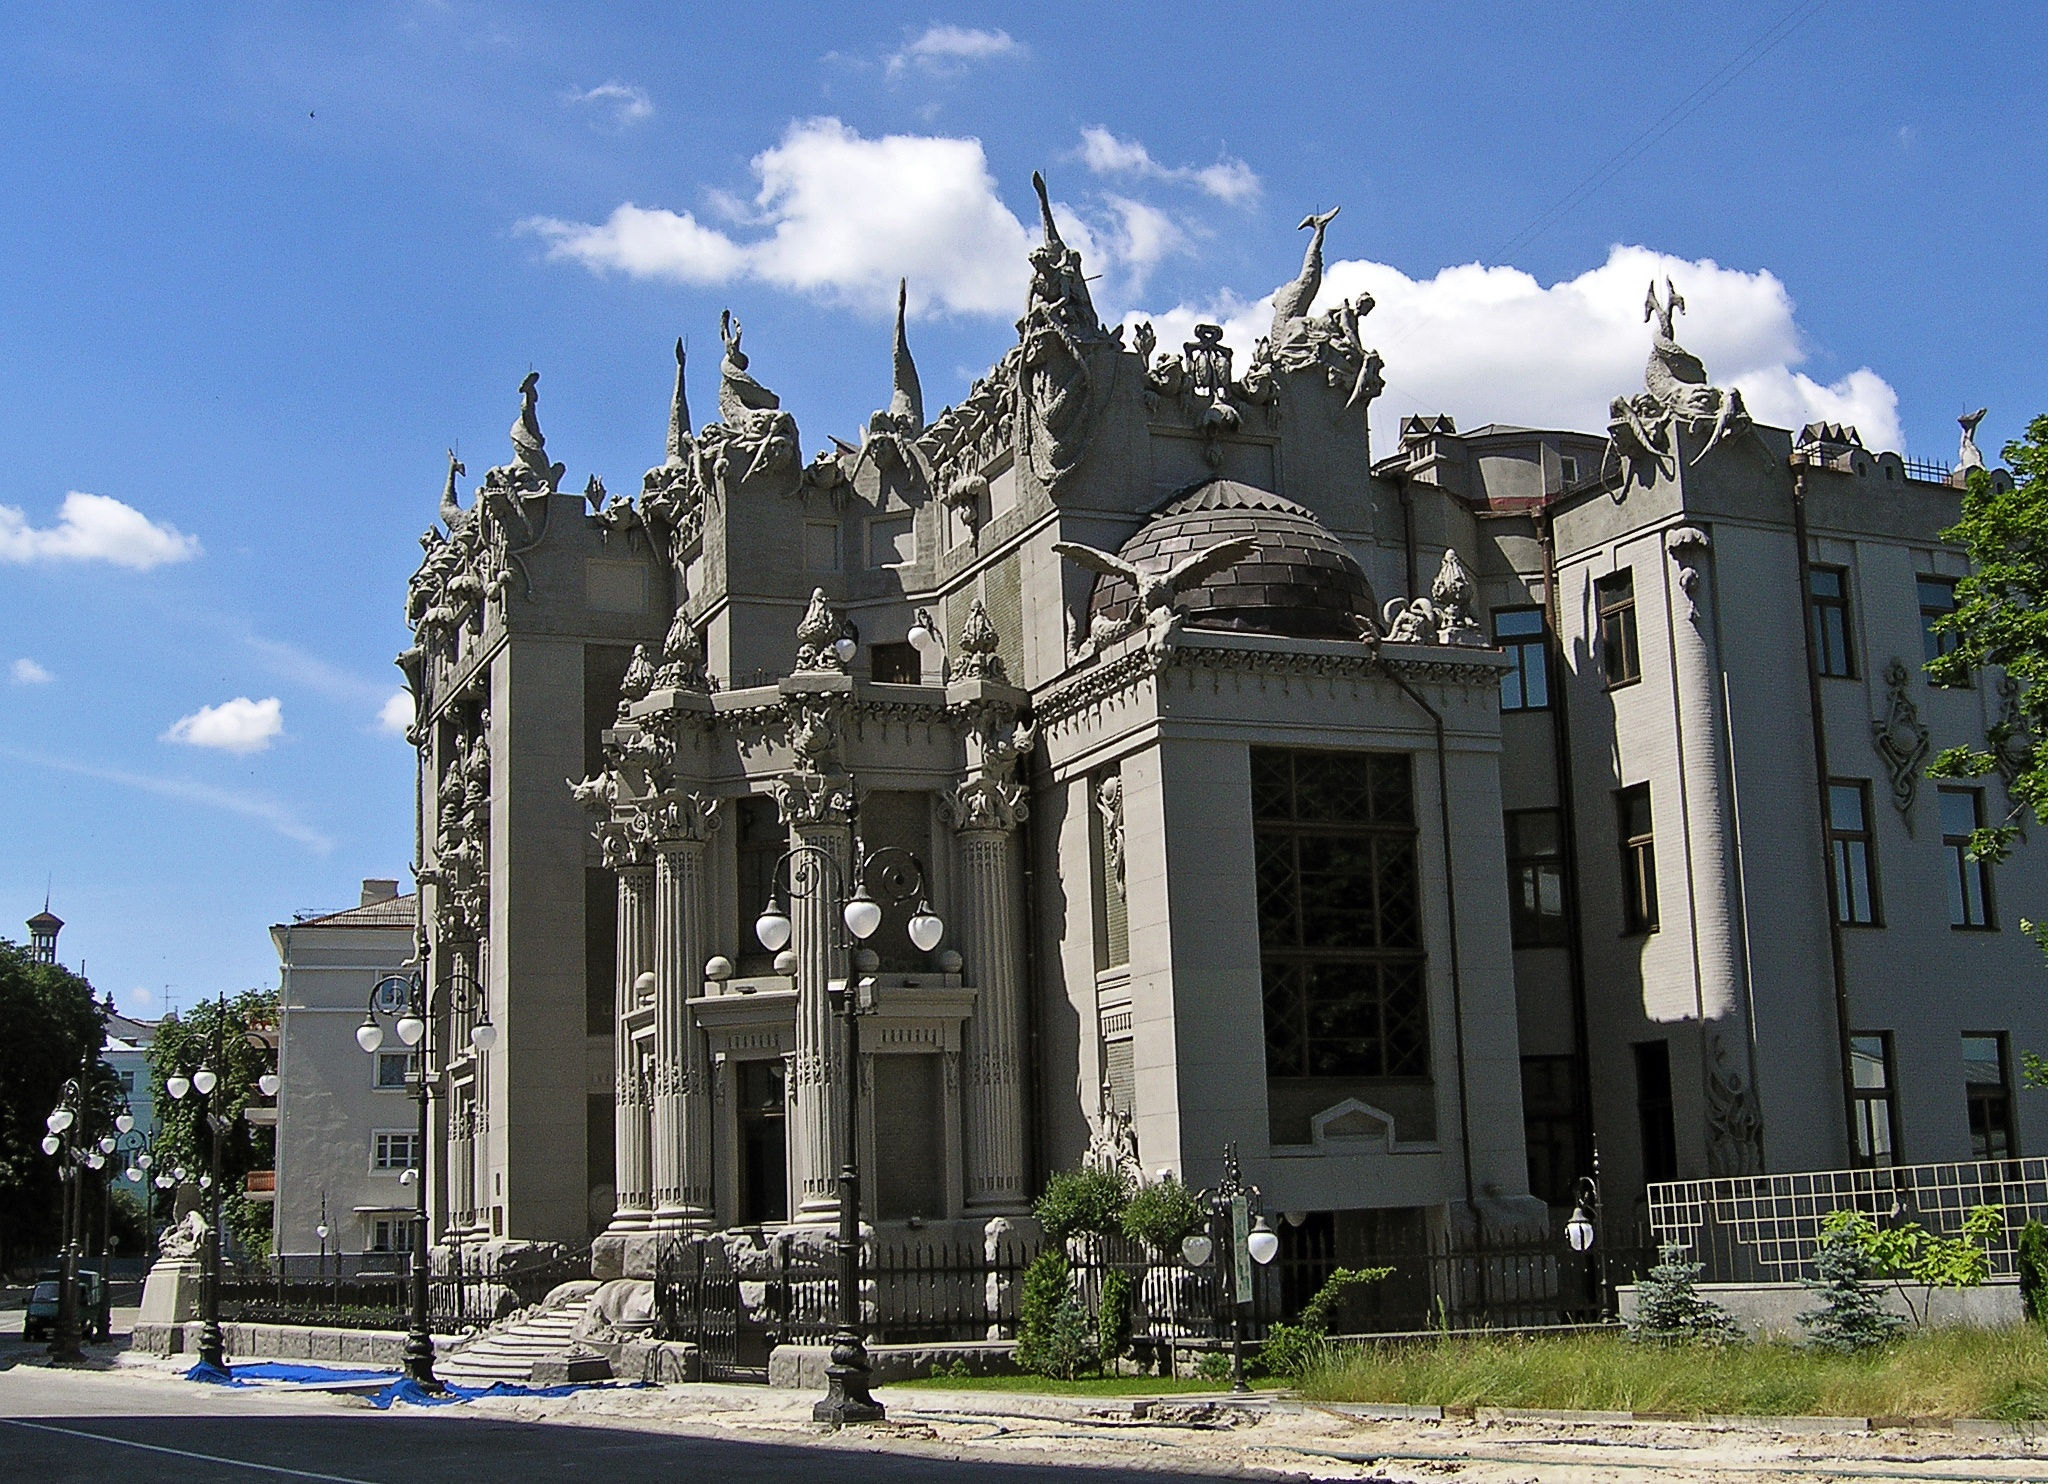 House_with_Chimaeras.jpg